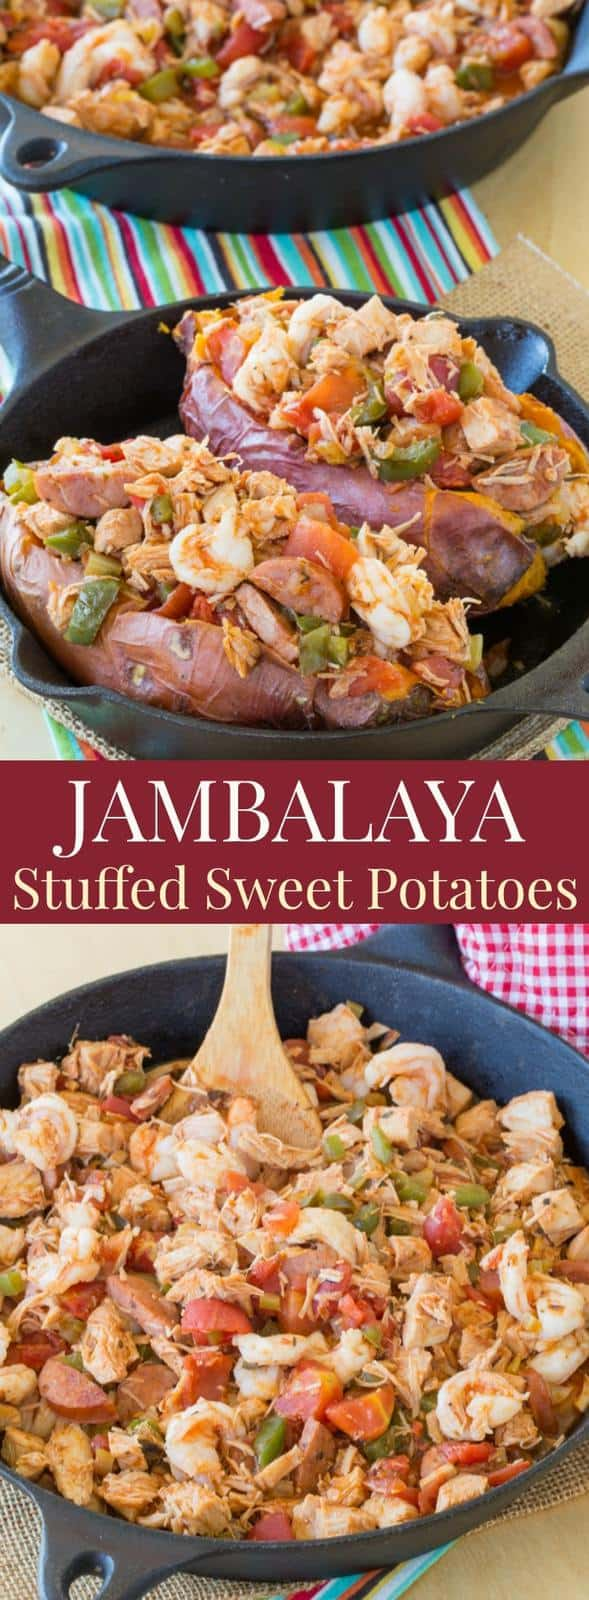 Jambalaya Stuffed Baked Sweet Potatoes - an easy and healthy twist on the classic Cajun recipe. Gluten free and paleo option.